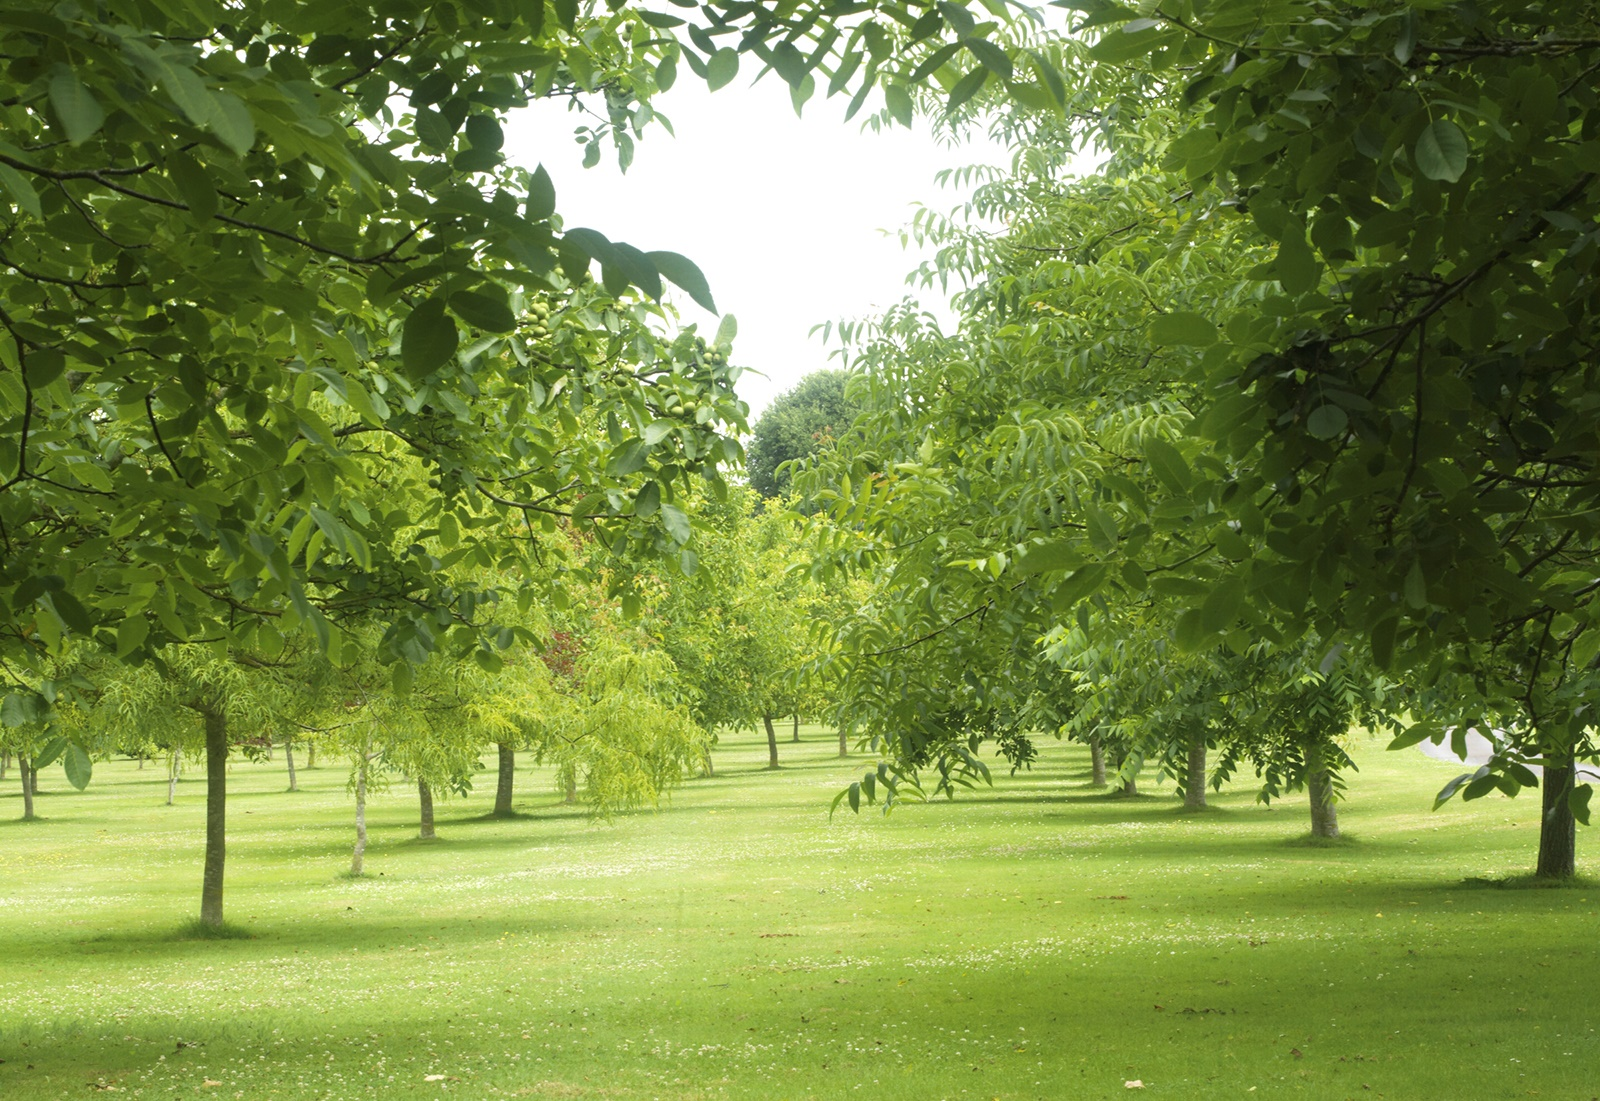 The Walnut Tree Co. - Provided as bare rooted, one-year-old hybrids or two-year old pure species plants.